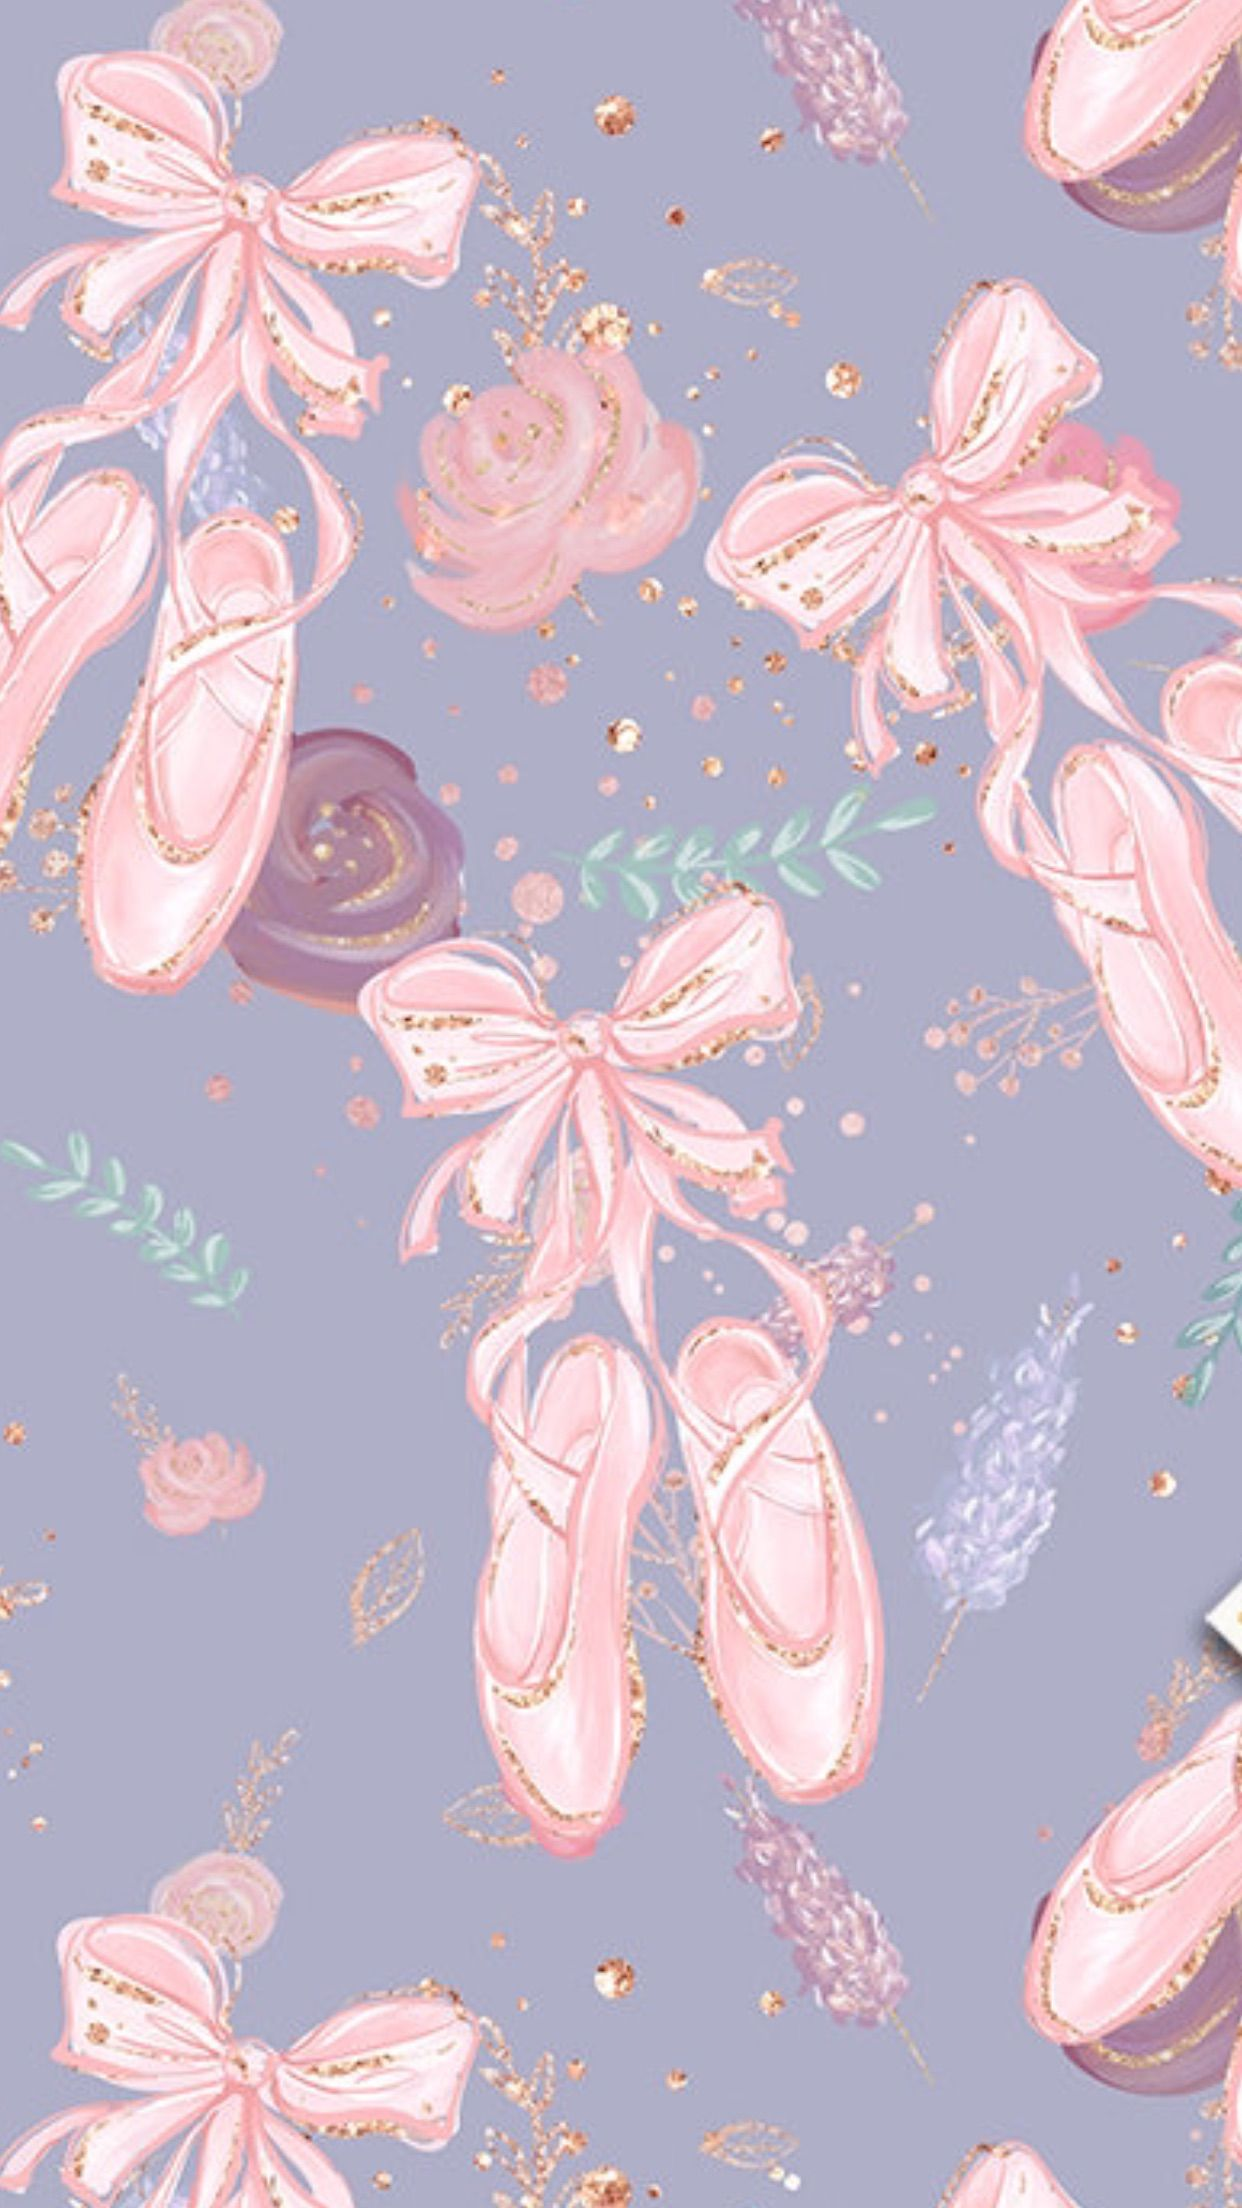 Pin By Miesha Brown On Cartoons3 Ballet Wallpaper Dance Background Ballerina Wallpaper